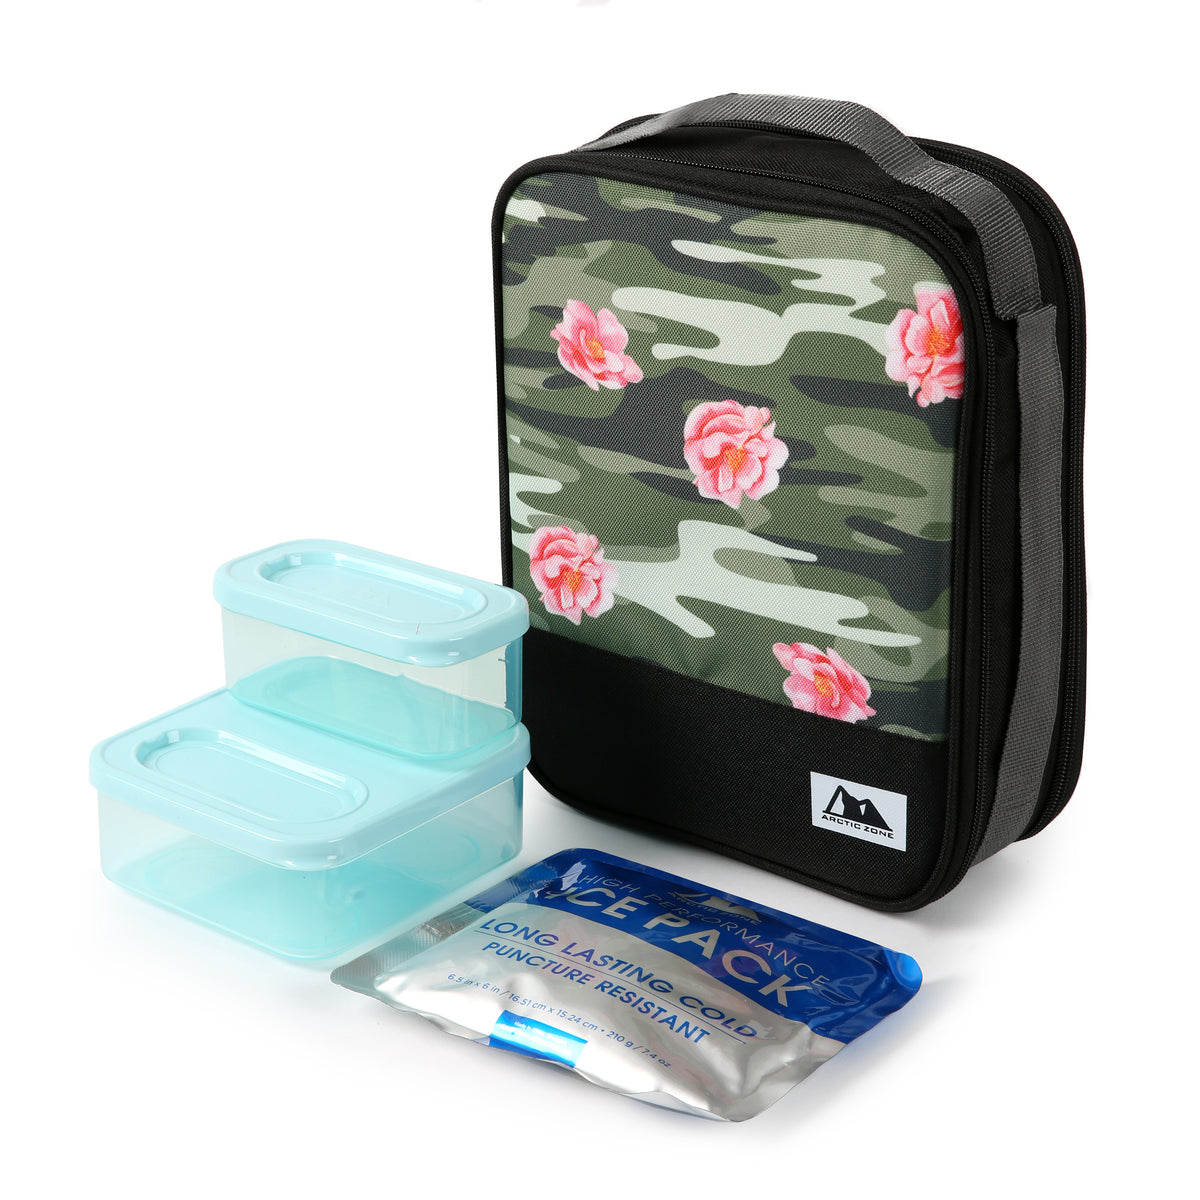 Arctic Zone Expandable Urban Lunch Pack - Rose Camo - Lunch Pack and accessories